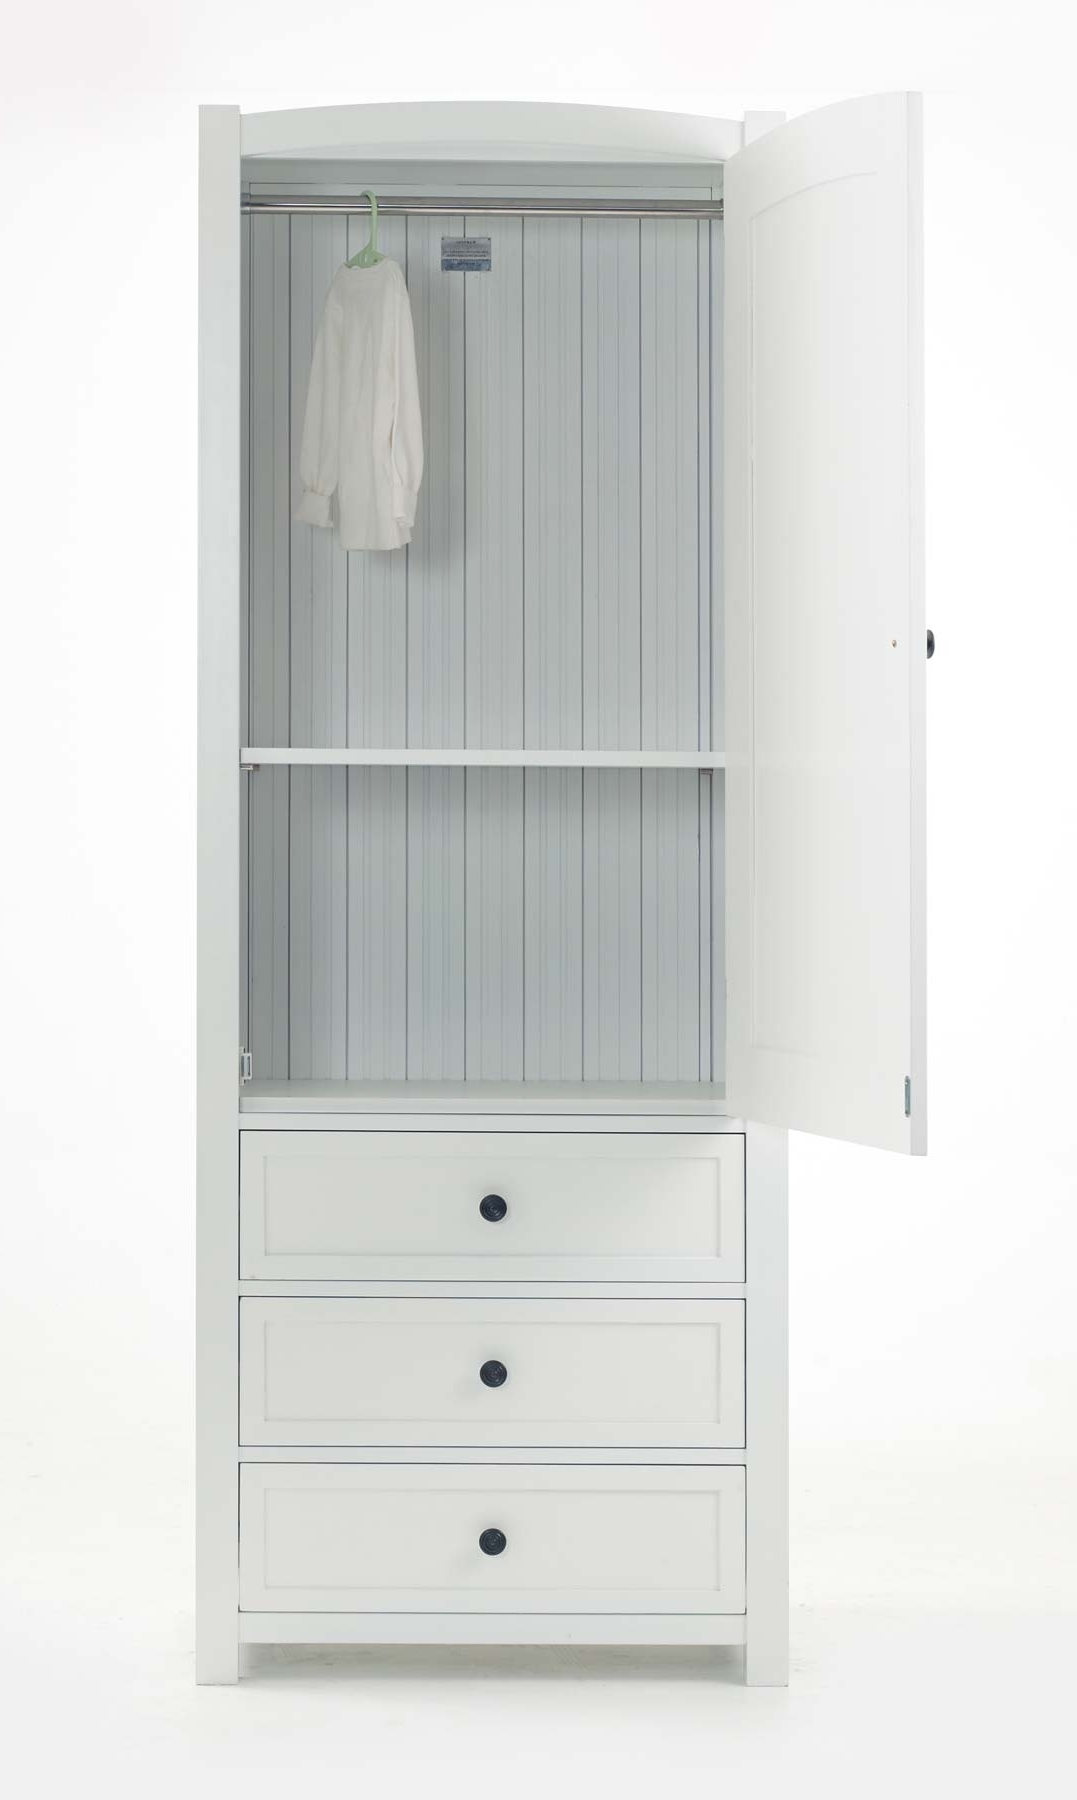 rectangle with by drawers wardrobe your grey black picture on connected inside clothes splendid corner the frames furniture wall keep wooden doors brown drawer to and